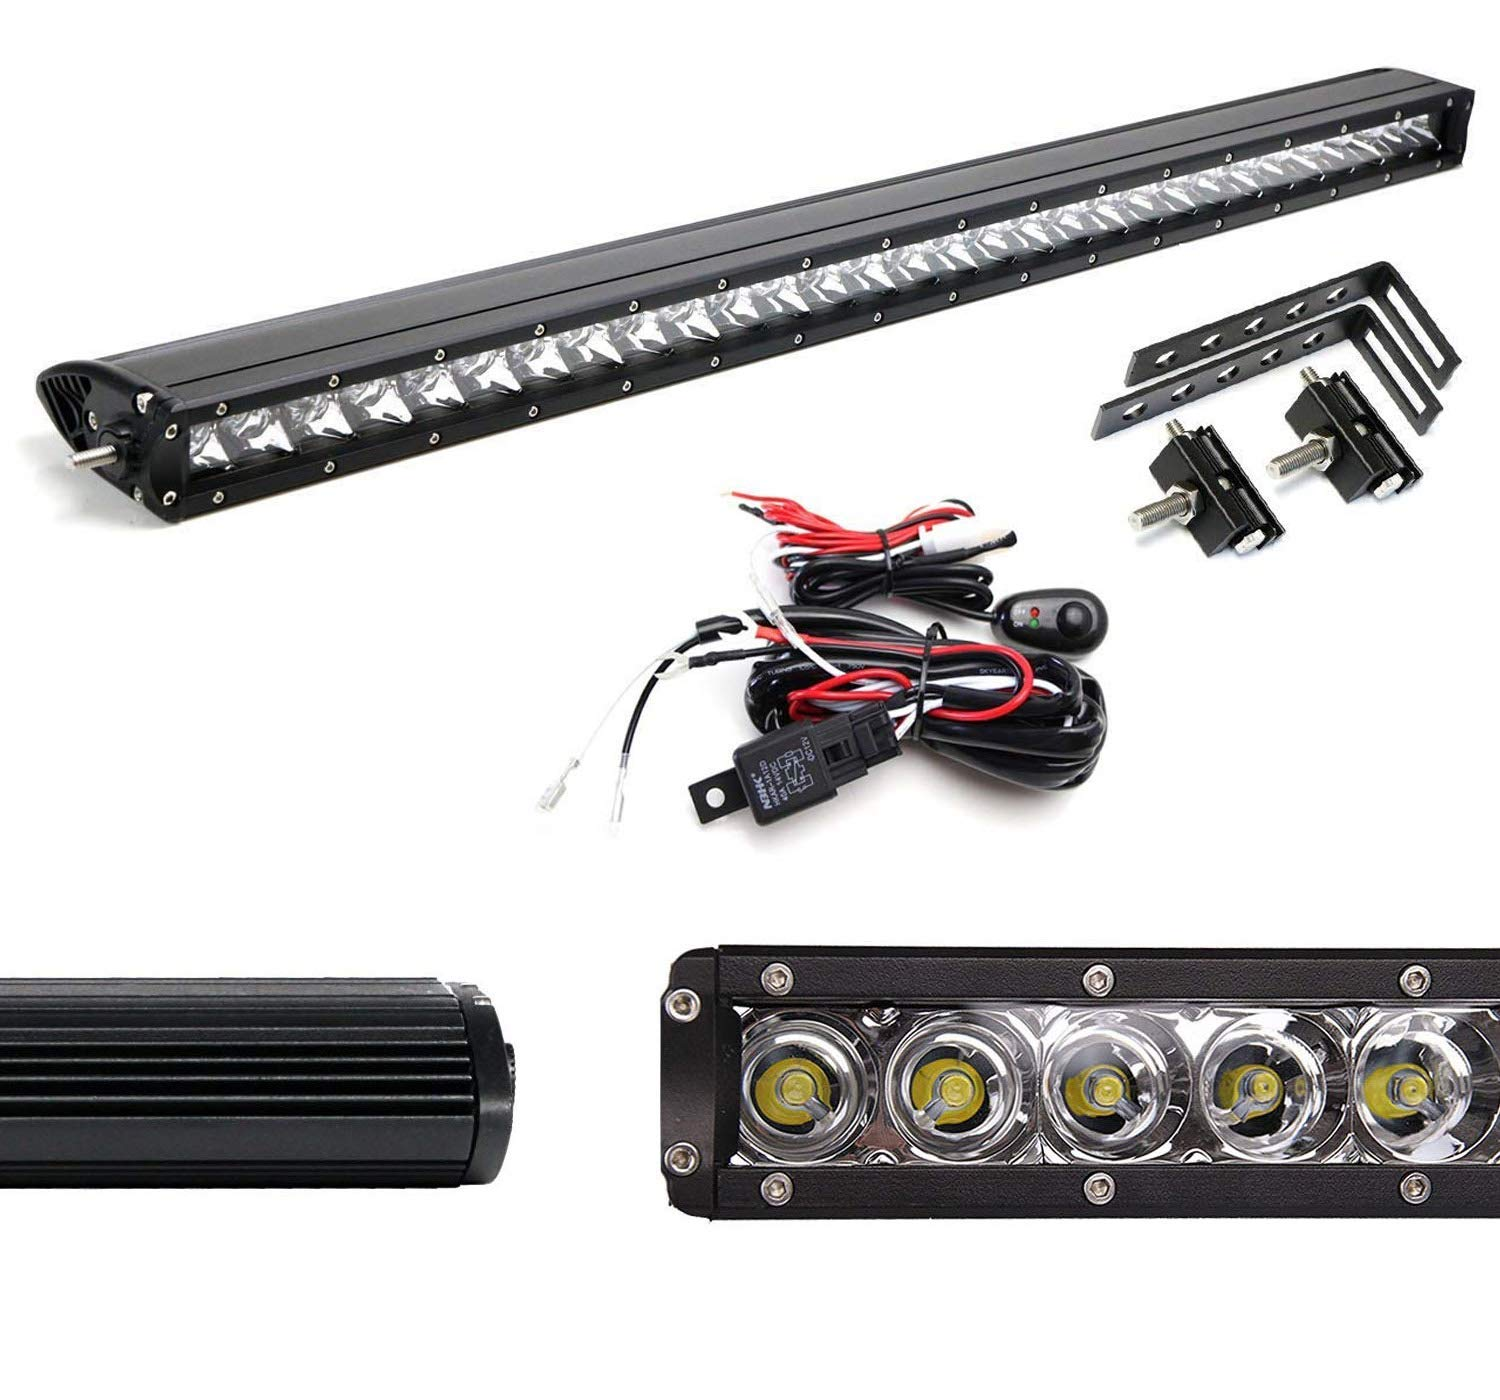 iJDMTOY Behind Grille Mount 30-Inch LED Light Bar Kit For ... on